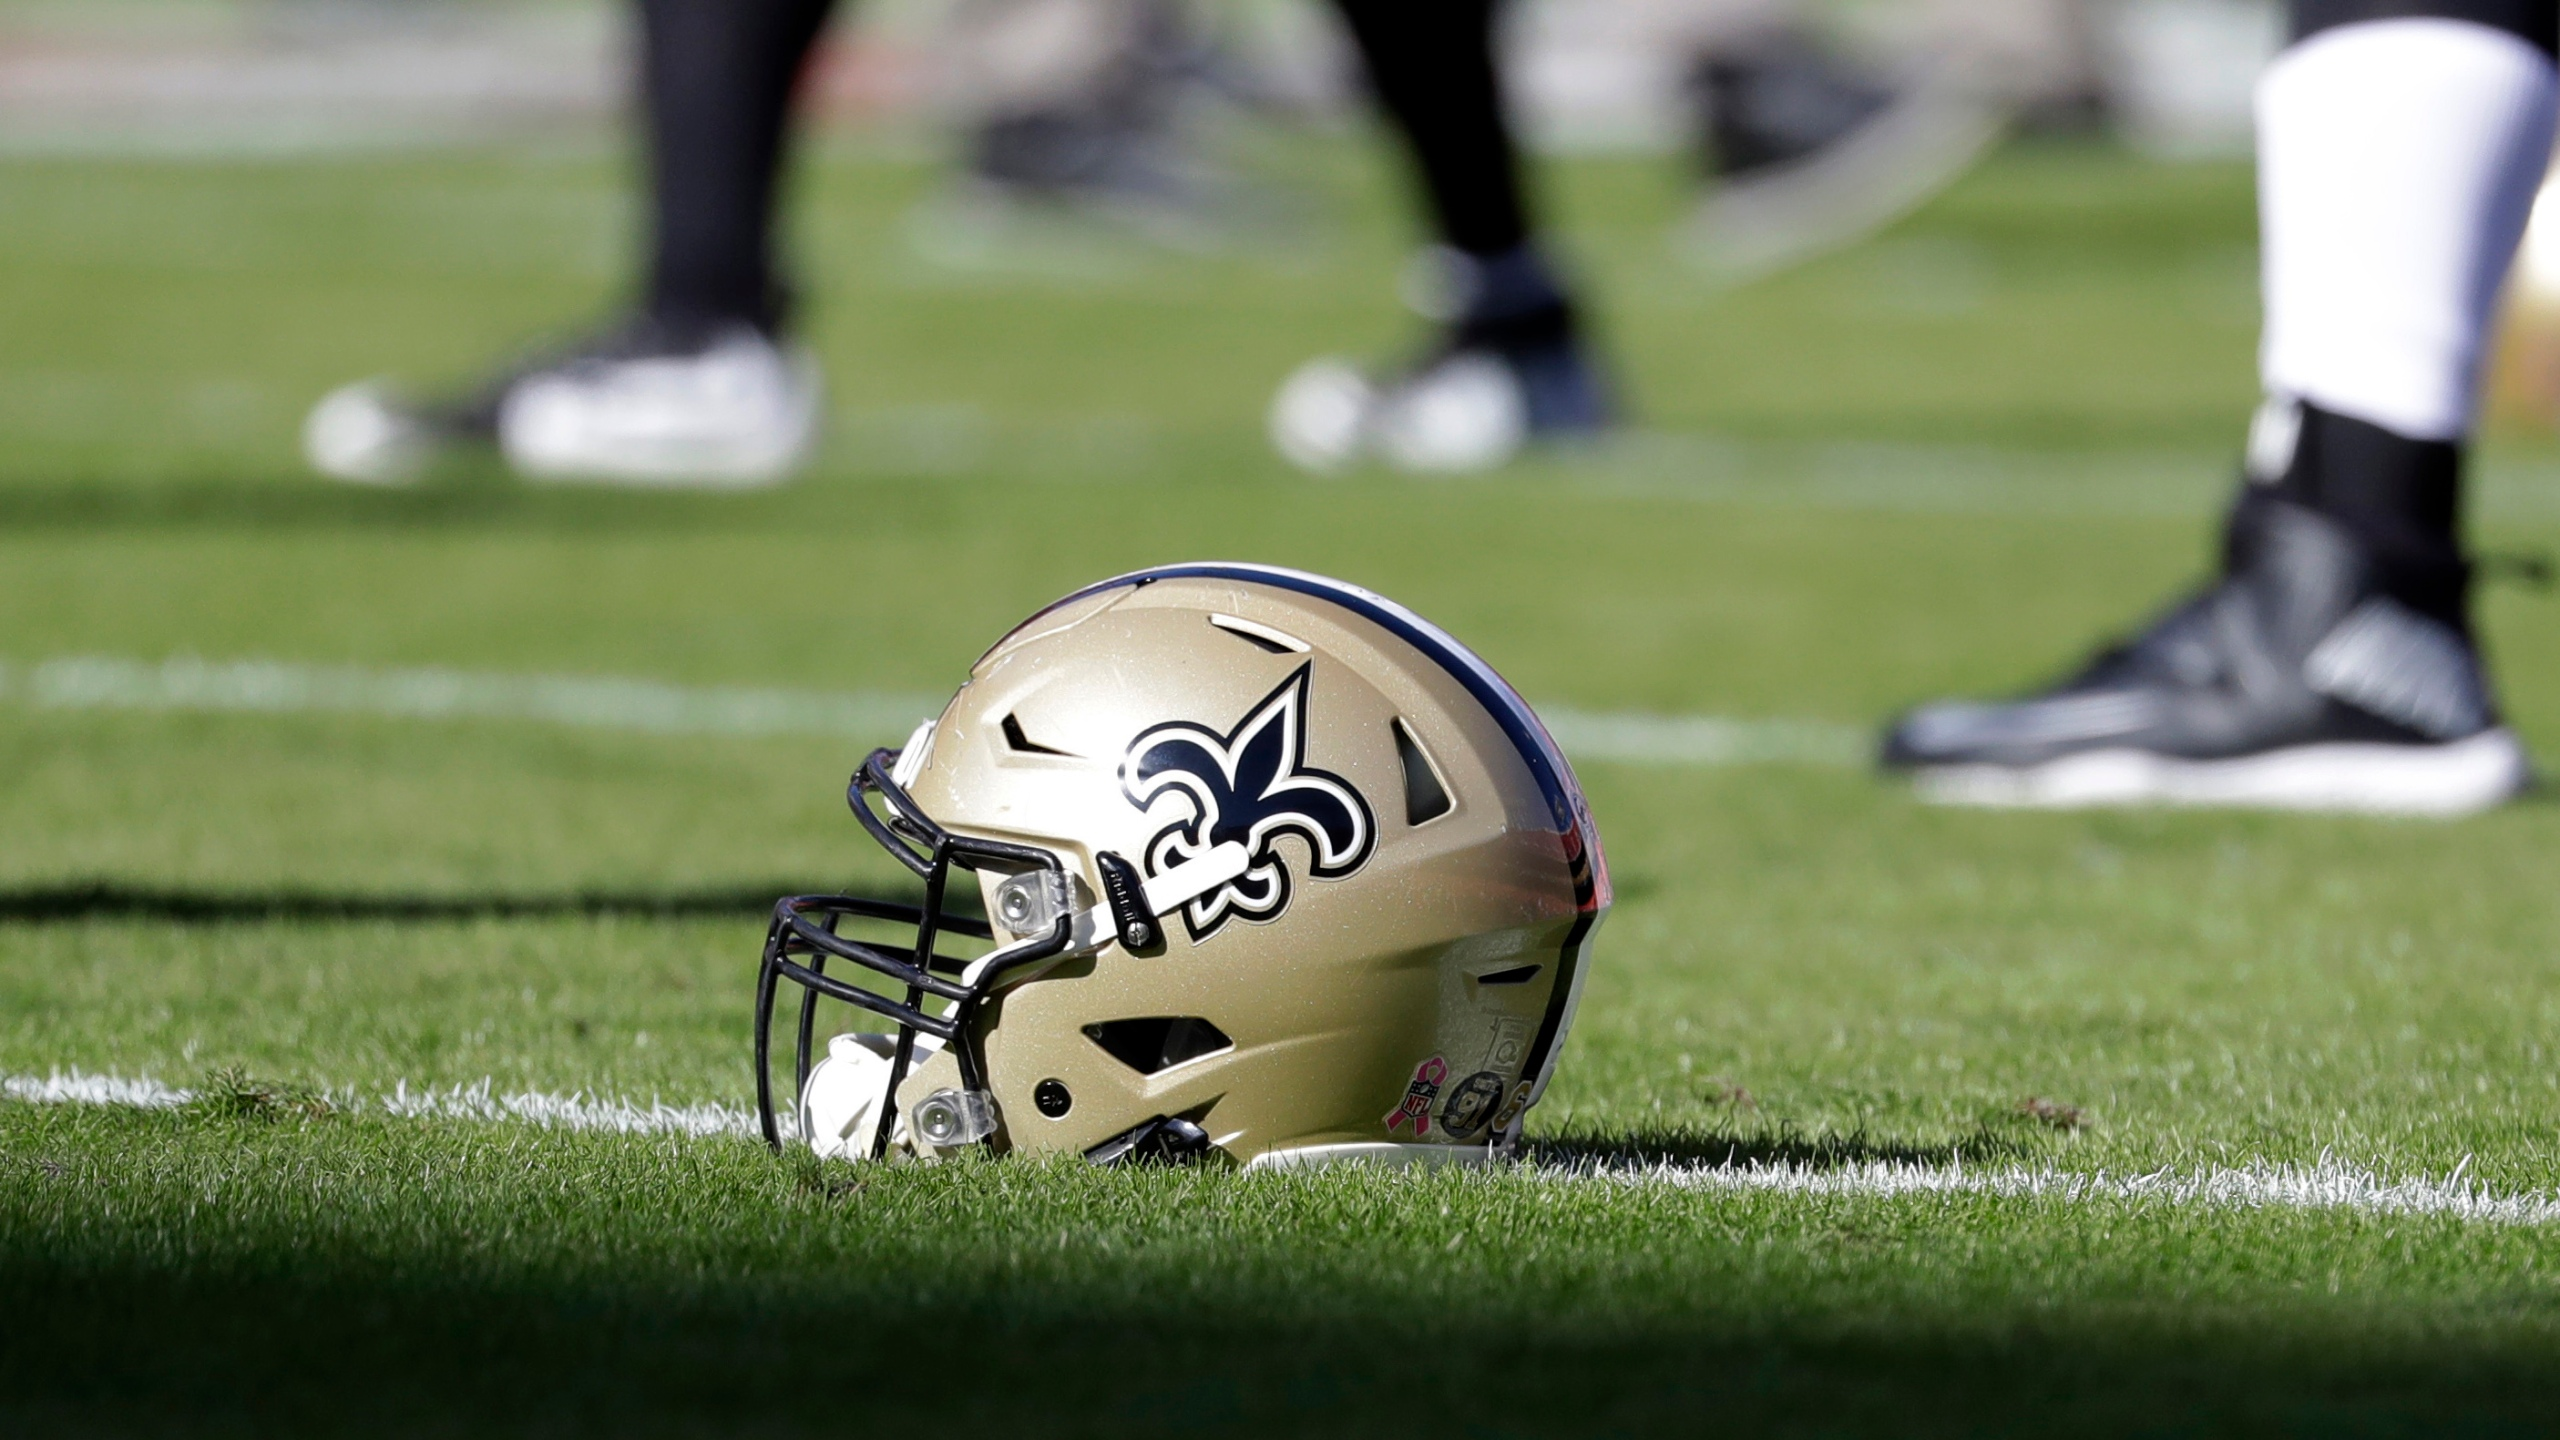 Nfl S Saints Fight To Shield Emails In Catholic Abuse Crisis Abc27